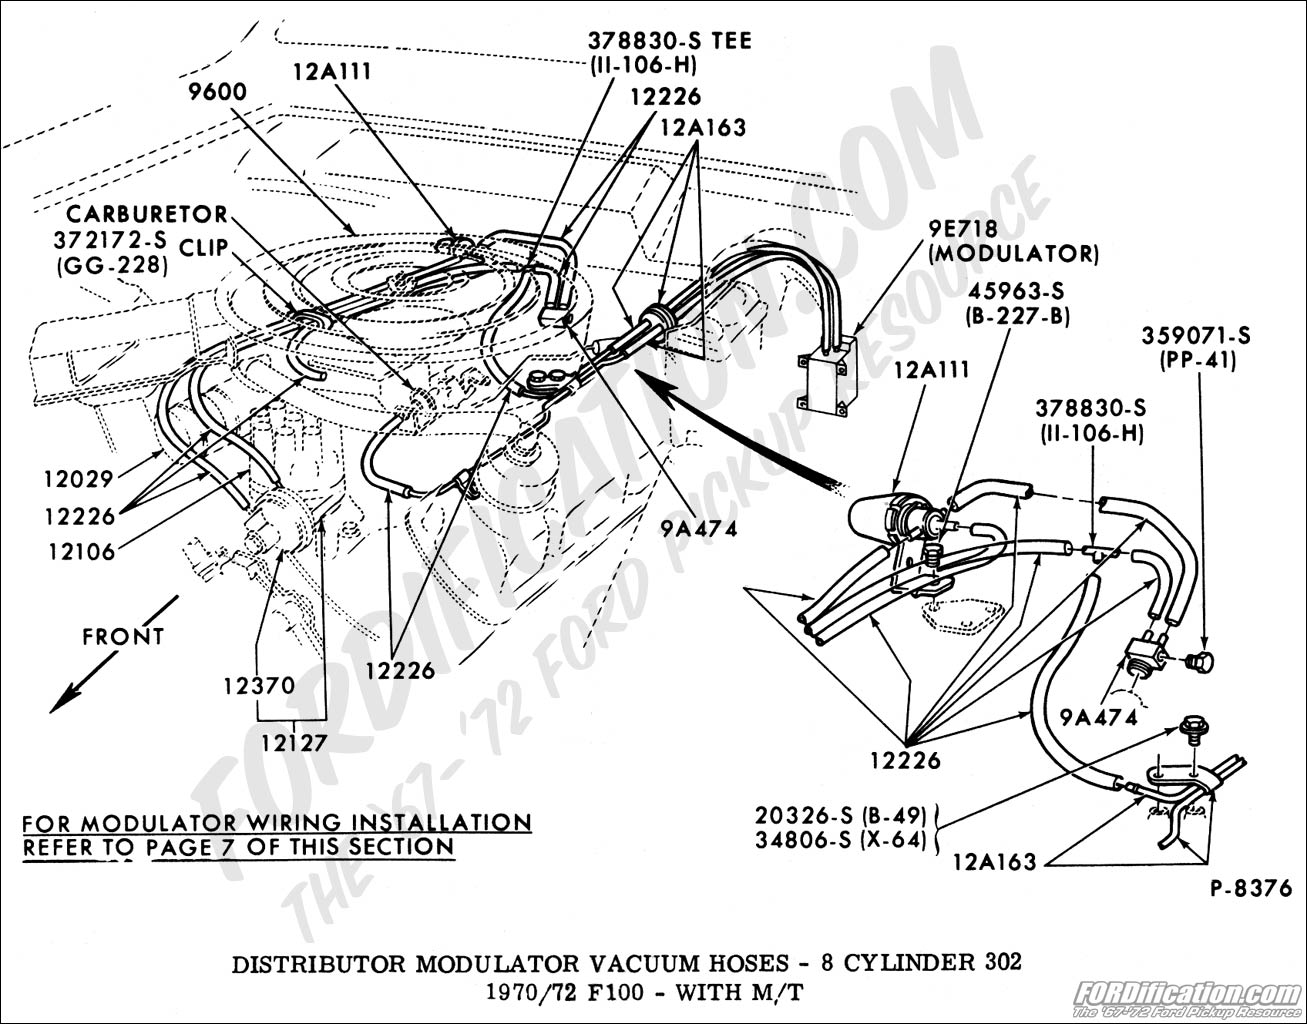 1954 Ford Truck Wiper Motor Wiring 1971 F100 Diagram Schematics Technical Drawings And Section I 1981